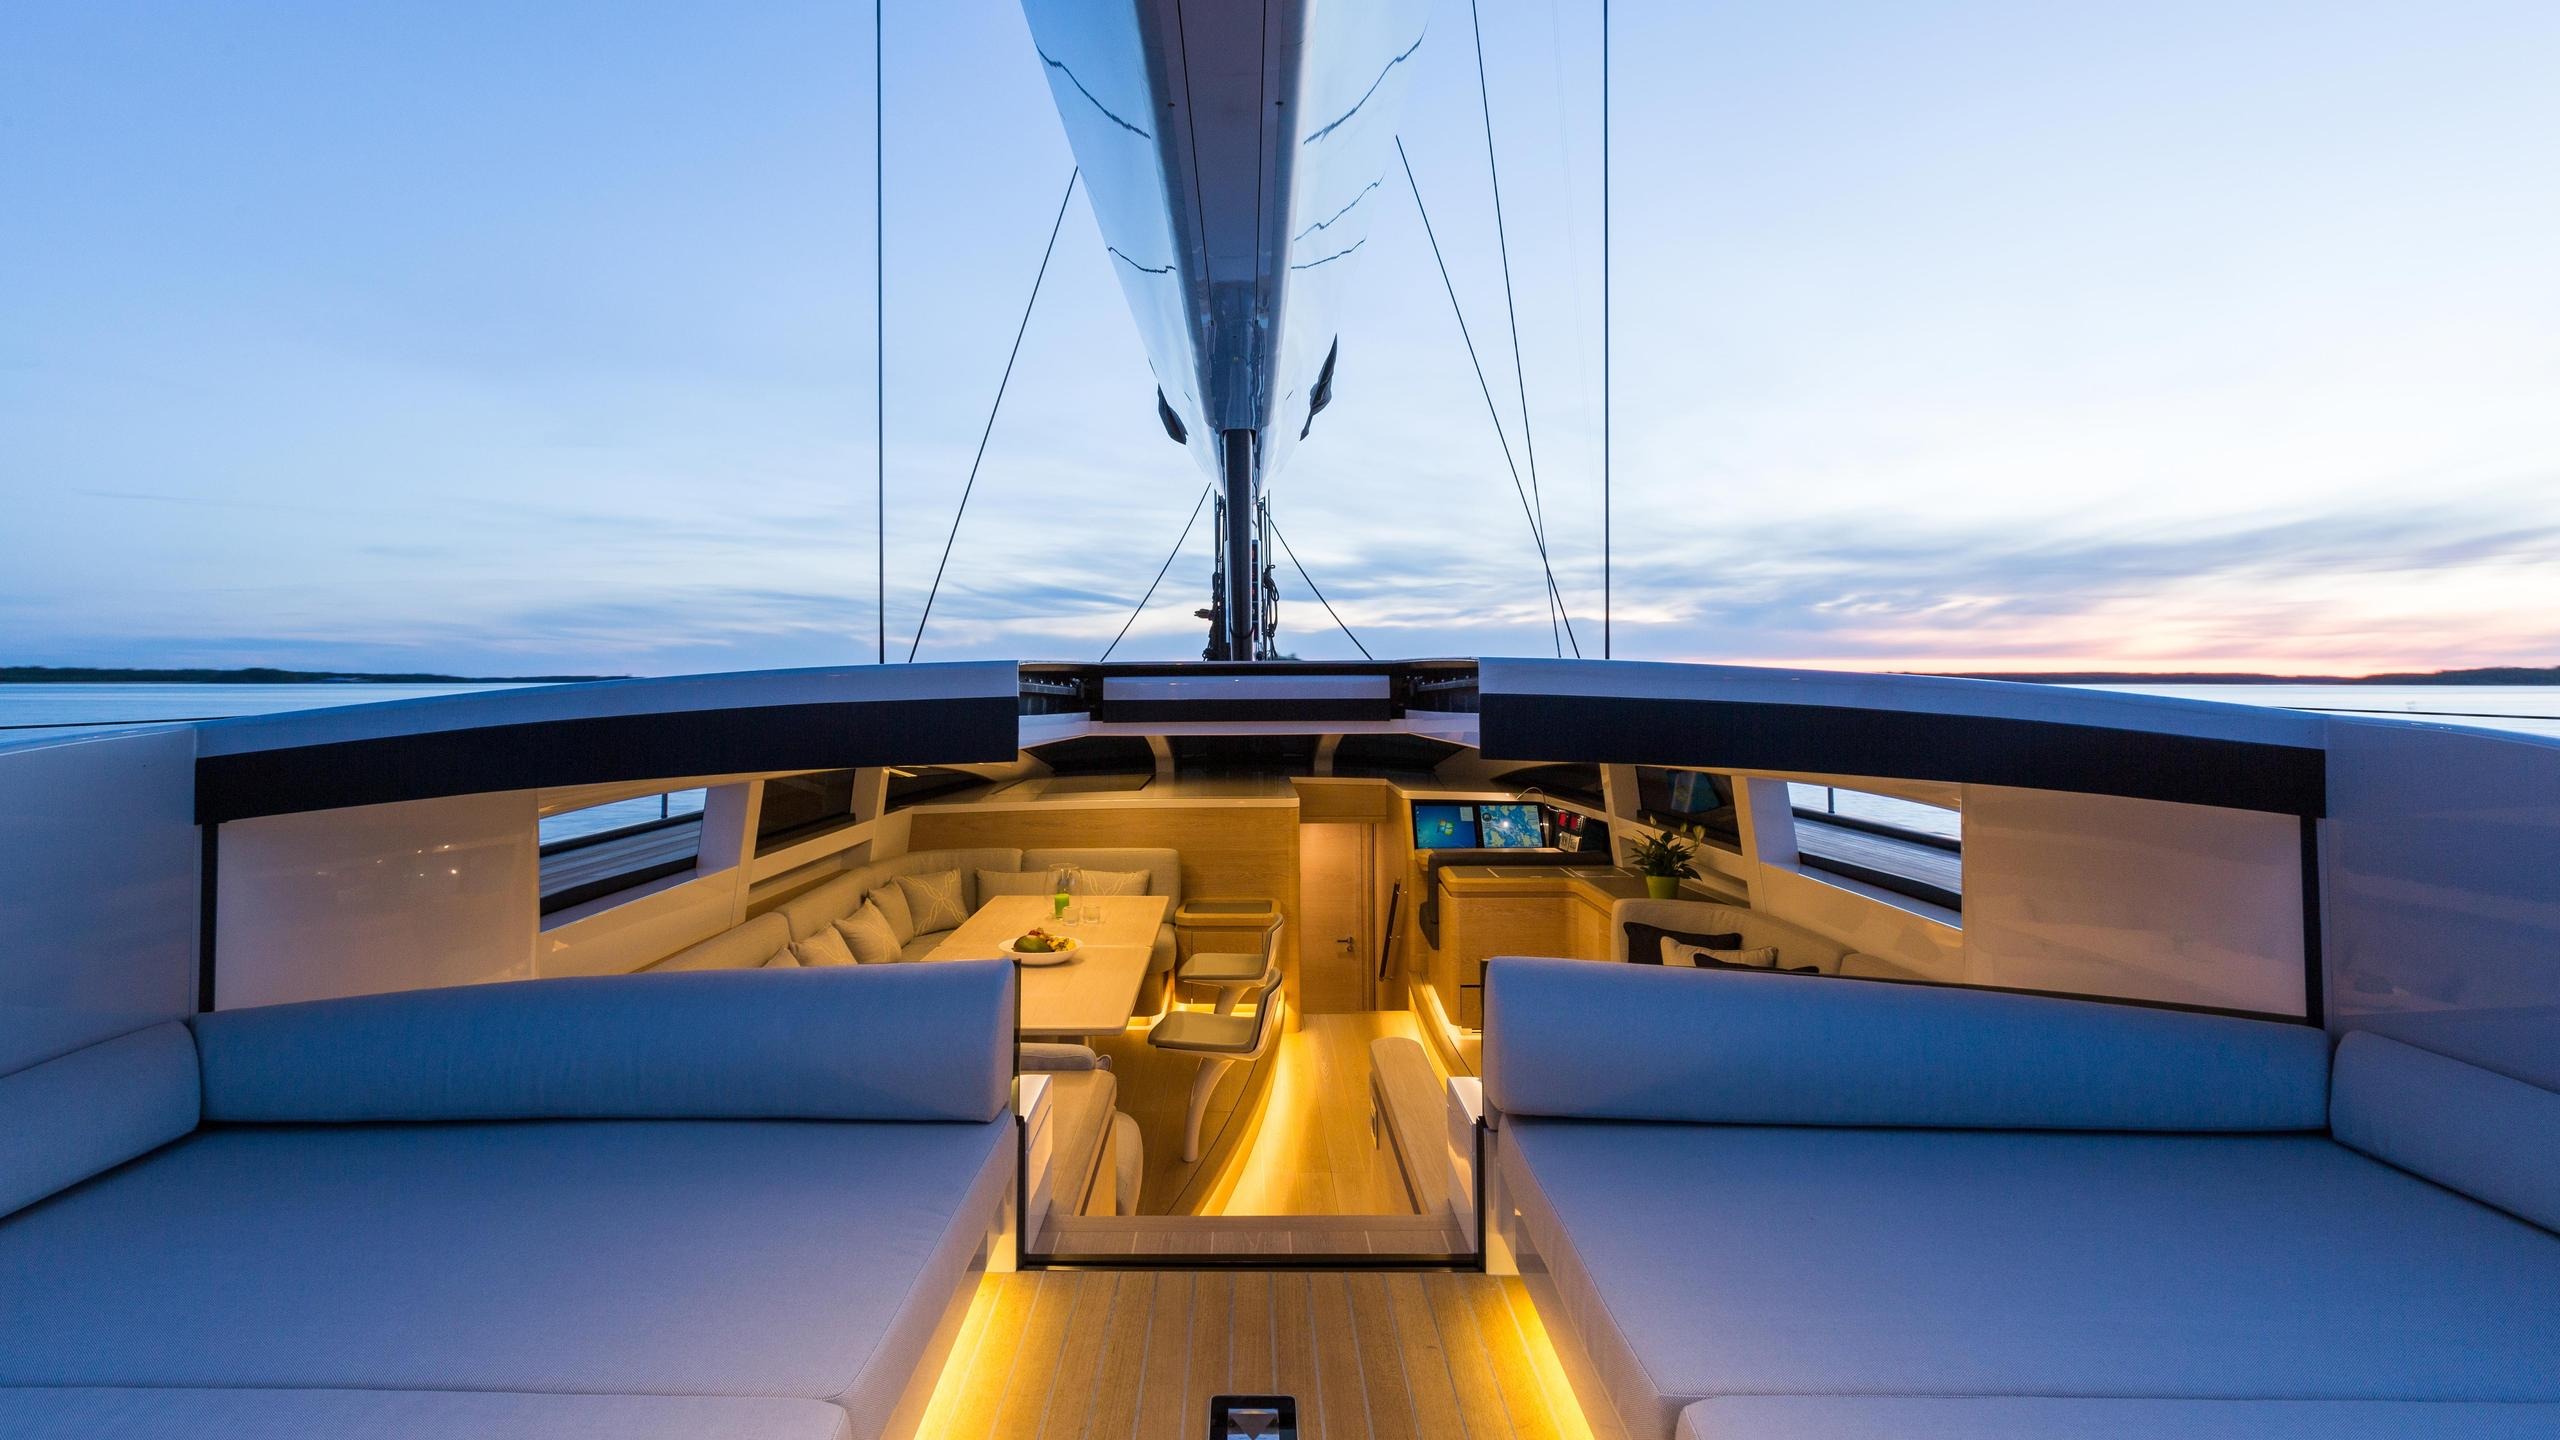 Winwin-sailing-yacht-baltic-2014-33m-saloon-from-deck